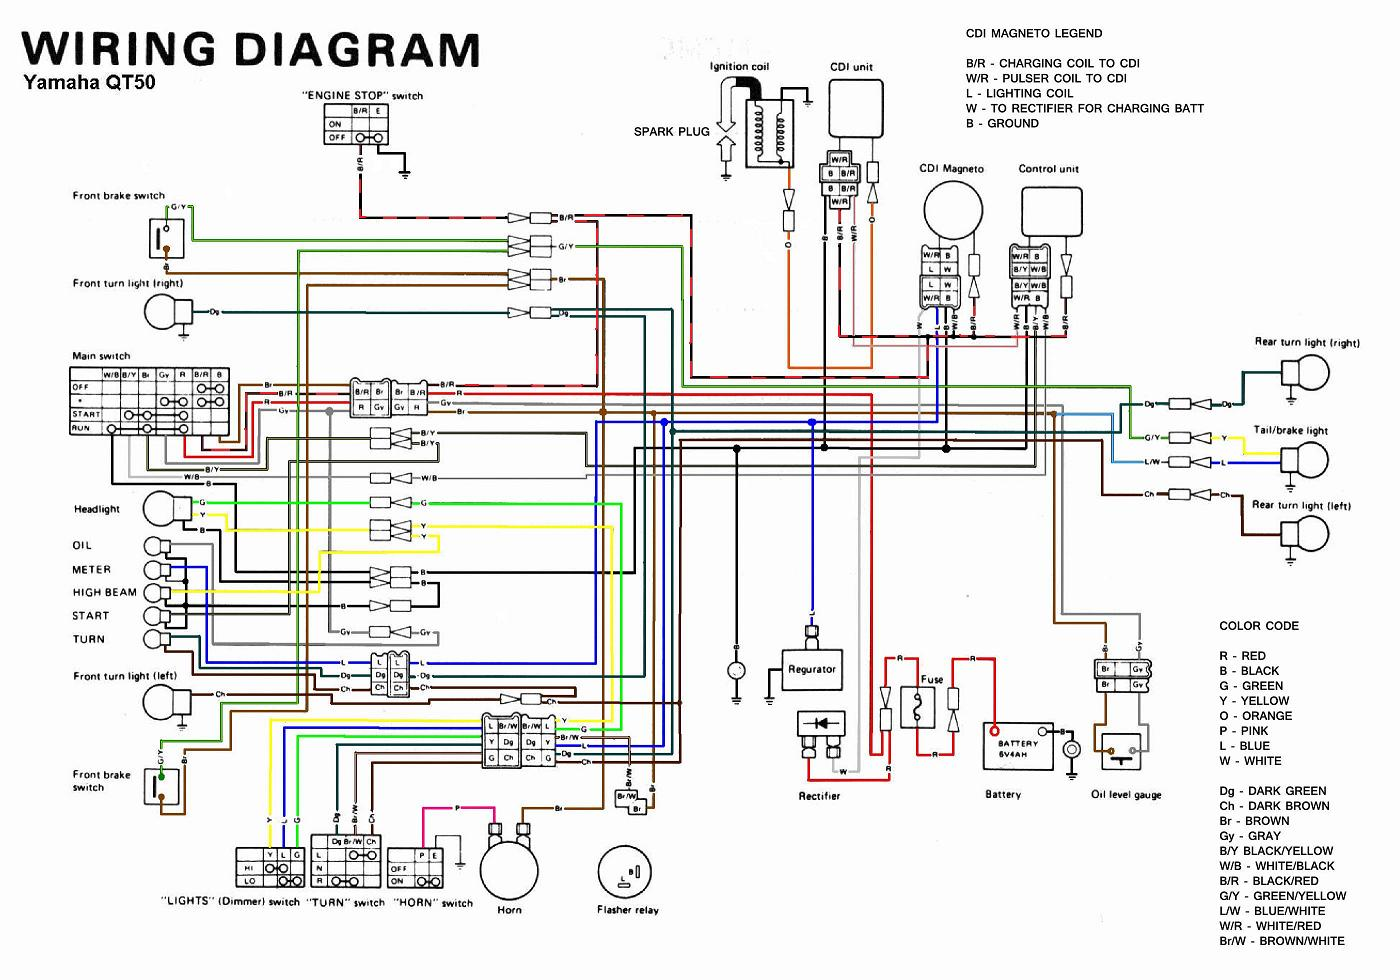 Yamaha QT50 Wiring Diagram yamaha qt50 wiring diagram yamaha qt50 luvin and other nopeds wiring schematics at n-0.co